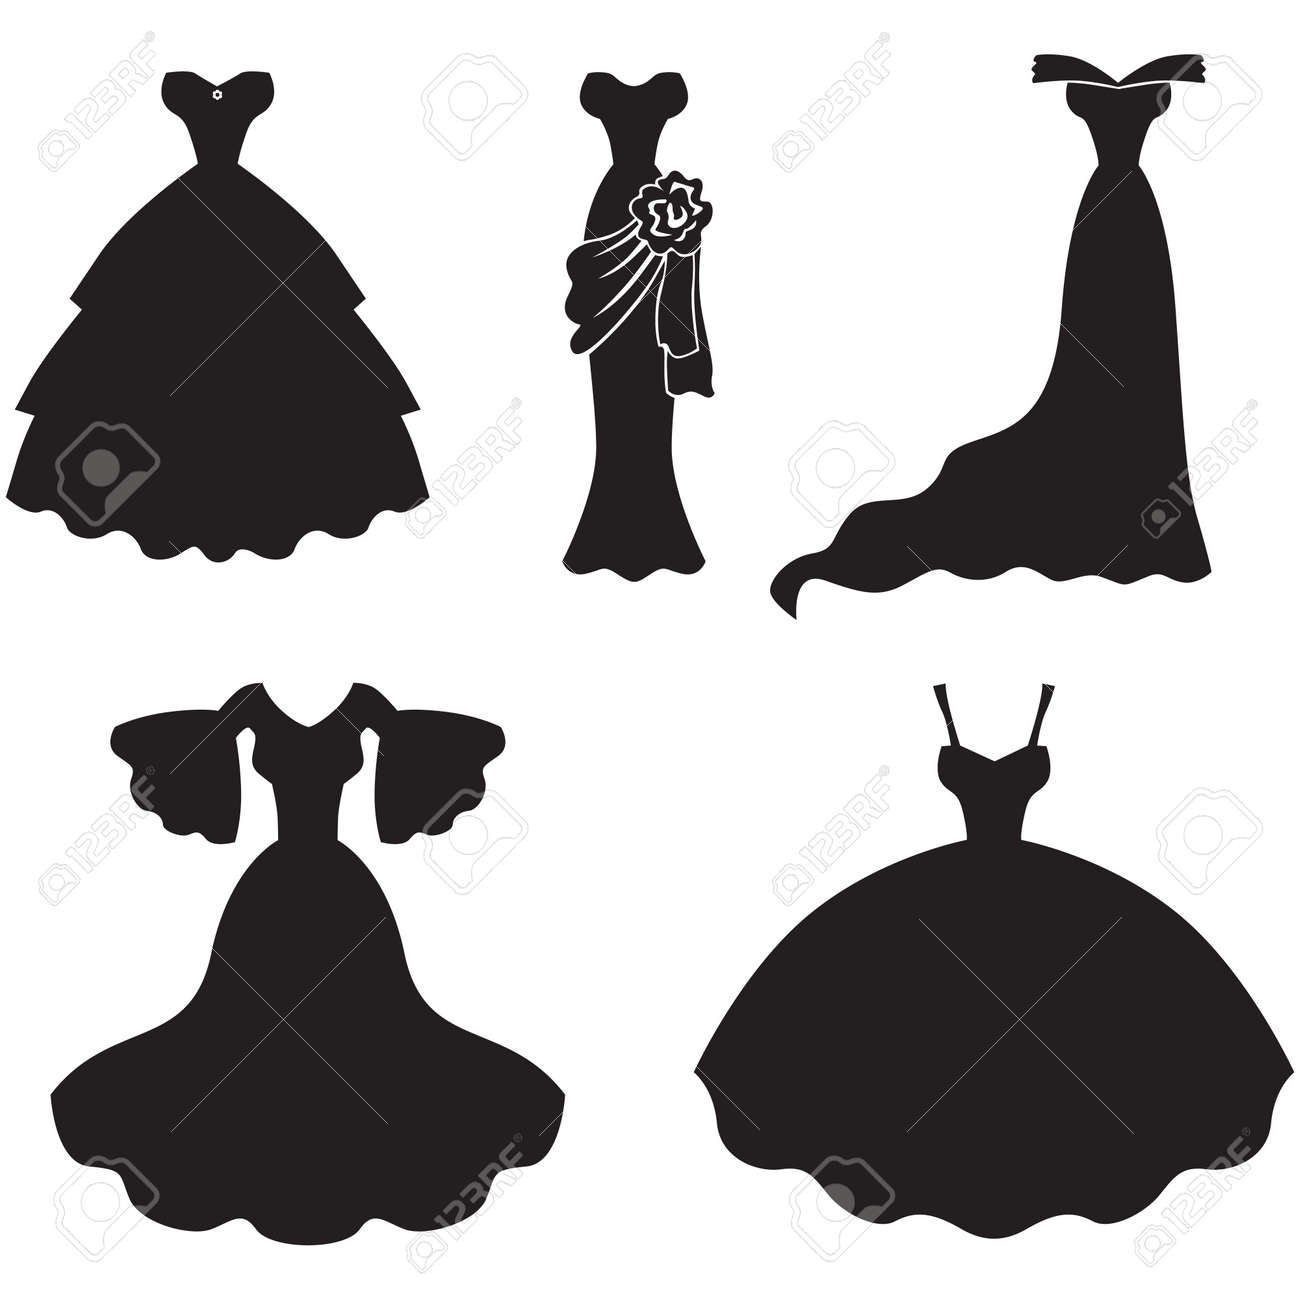 Set Of Silhouette Images Of Wedding Dress Royalty Free Cliparts ...